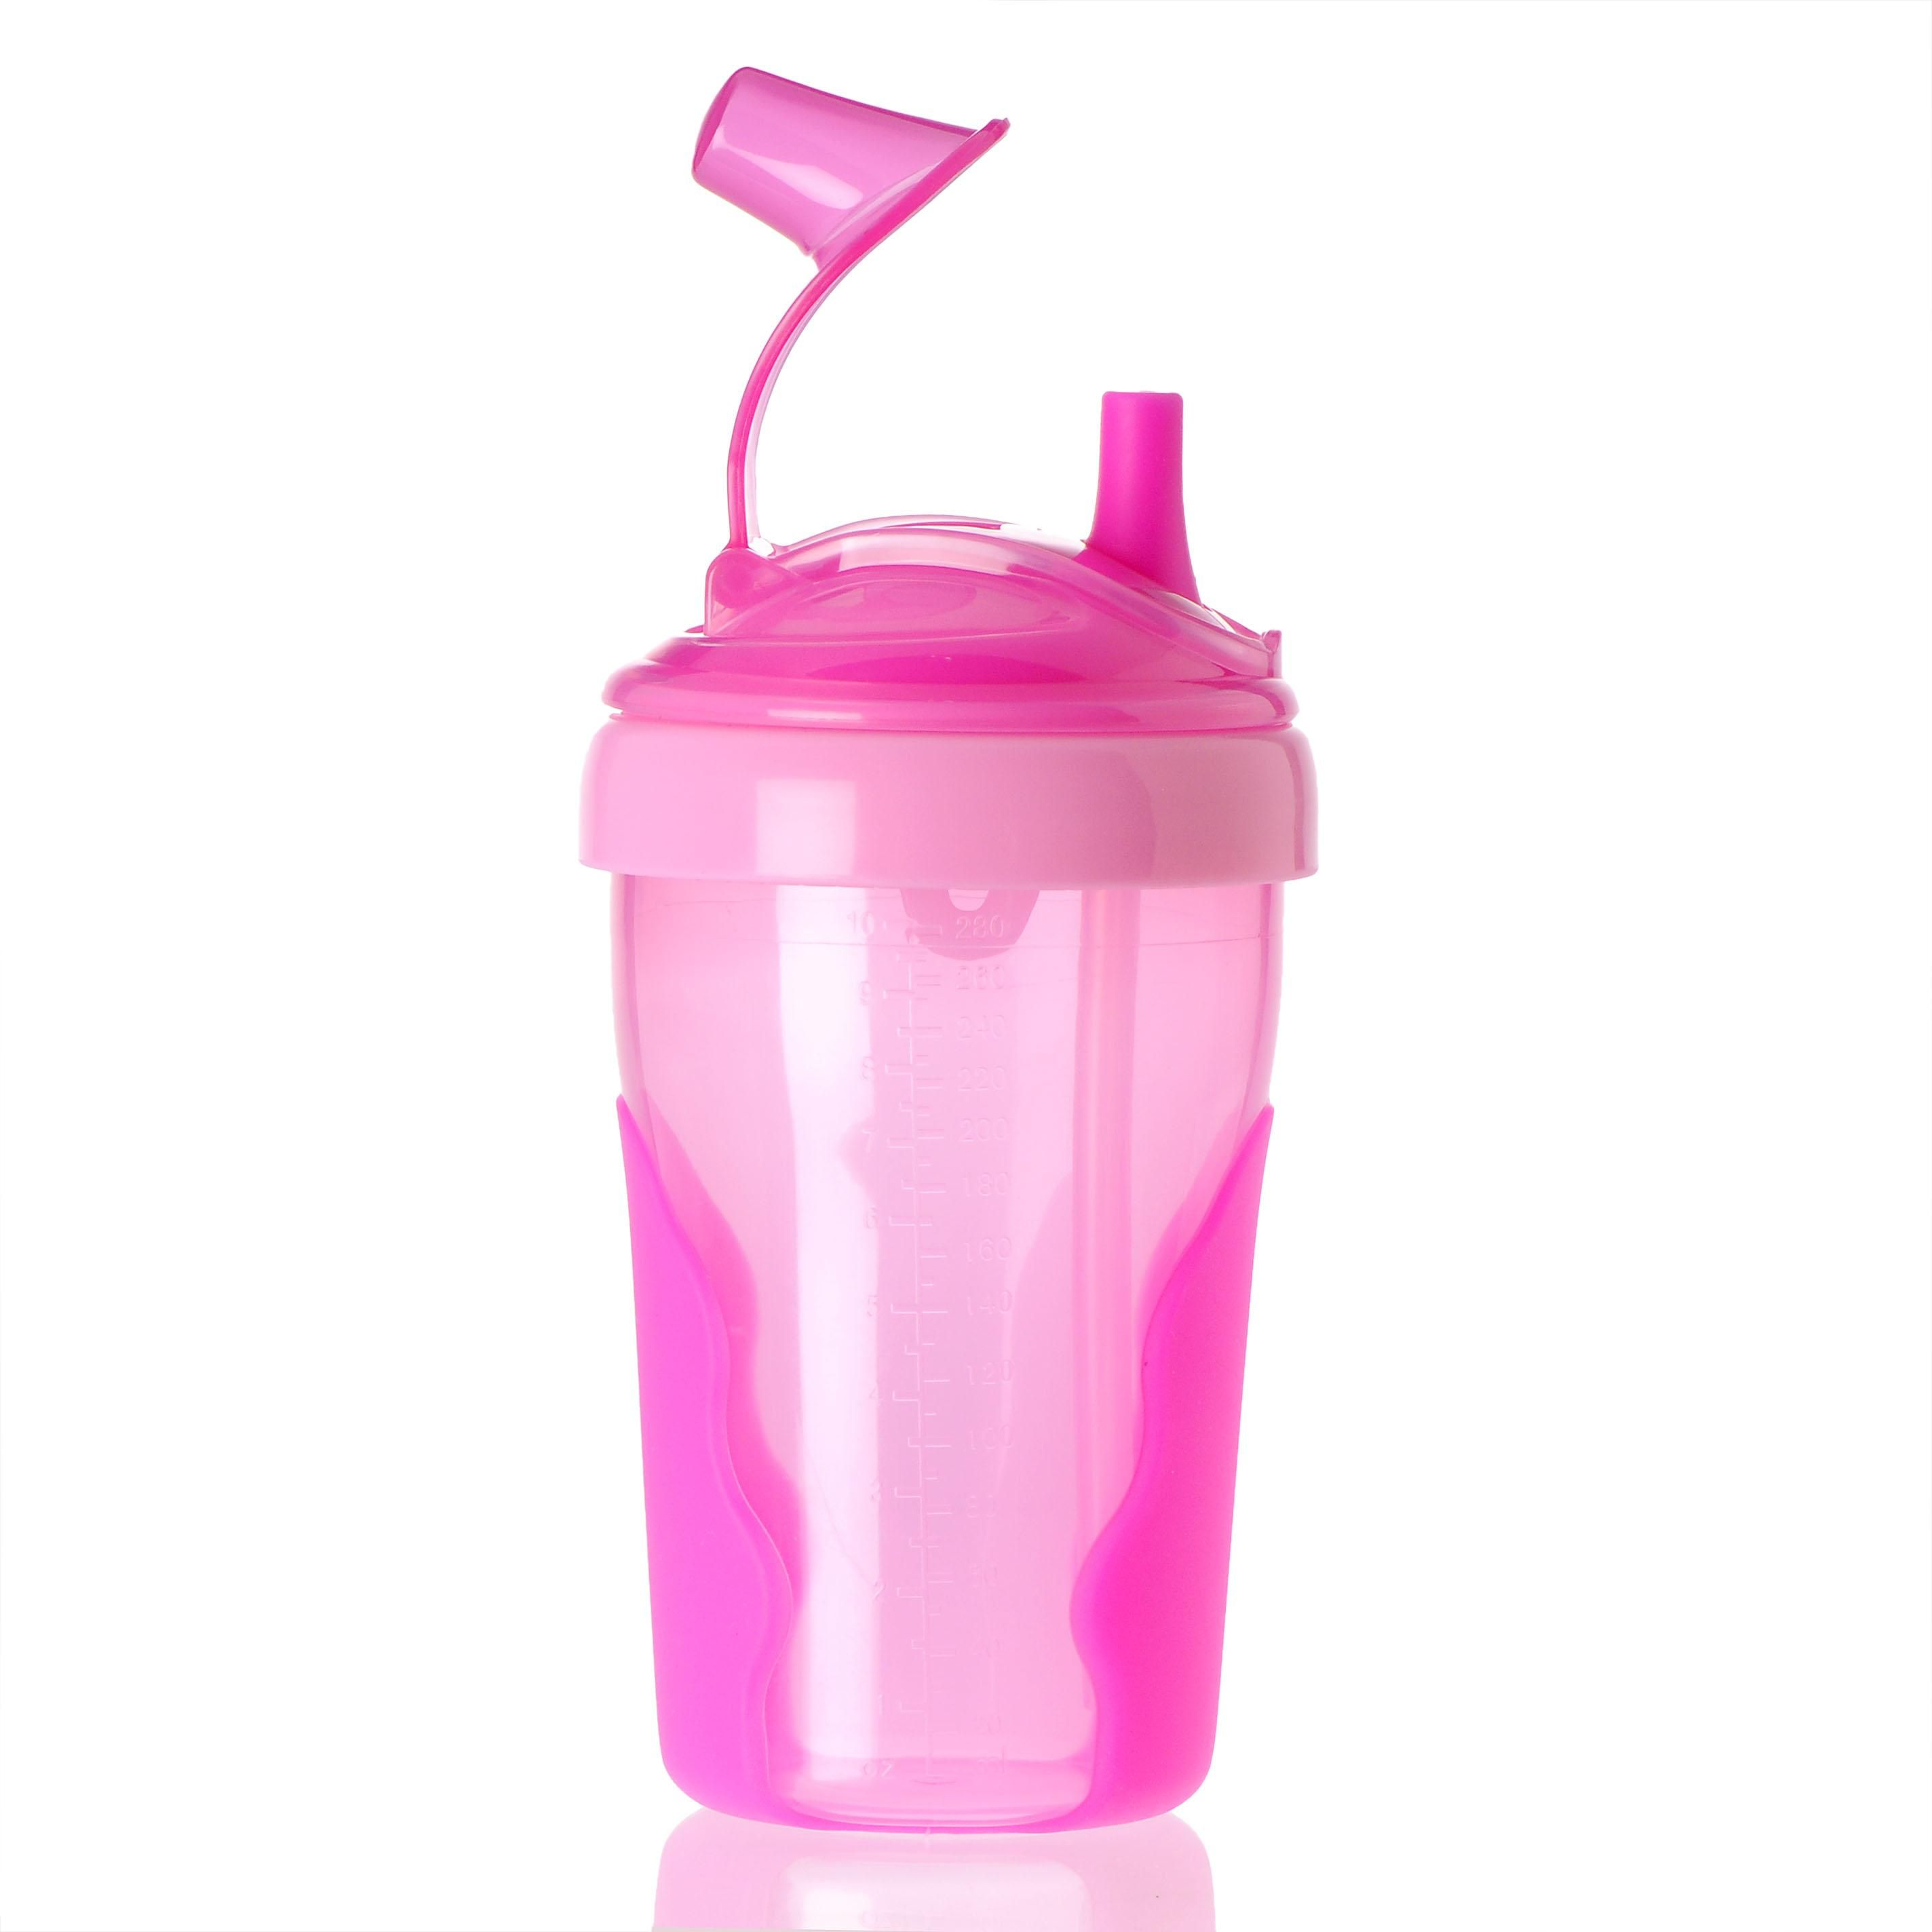 Toddler Straw Cup side PINK Cup with straw, Cool baby